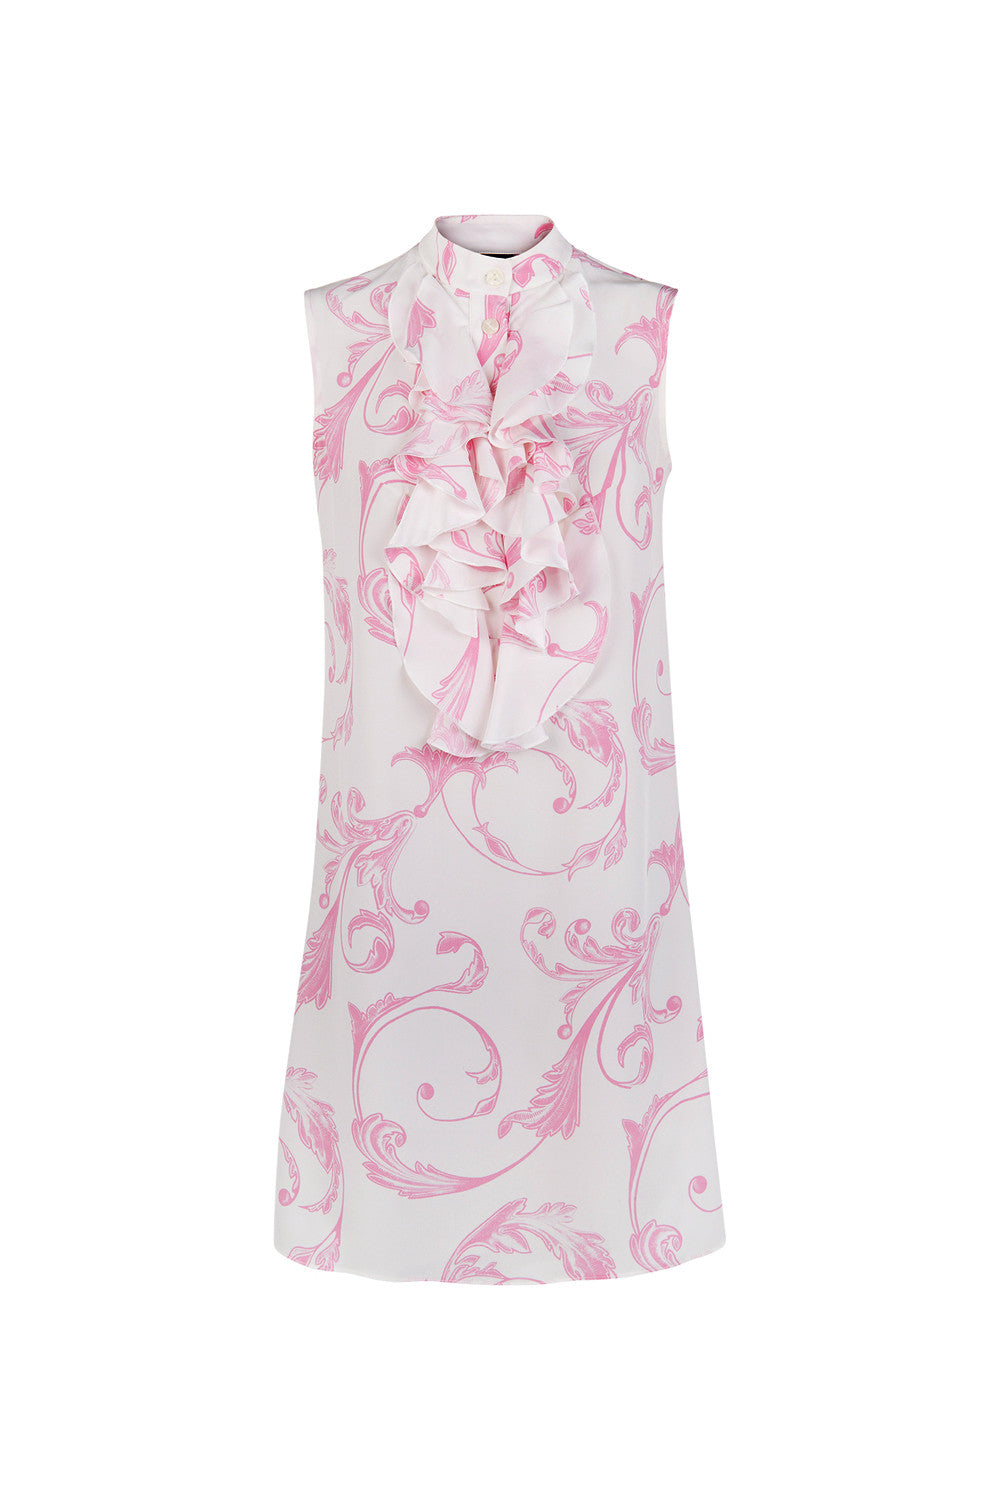 Leonie Dress - Womenswear Outlet - Madderson London